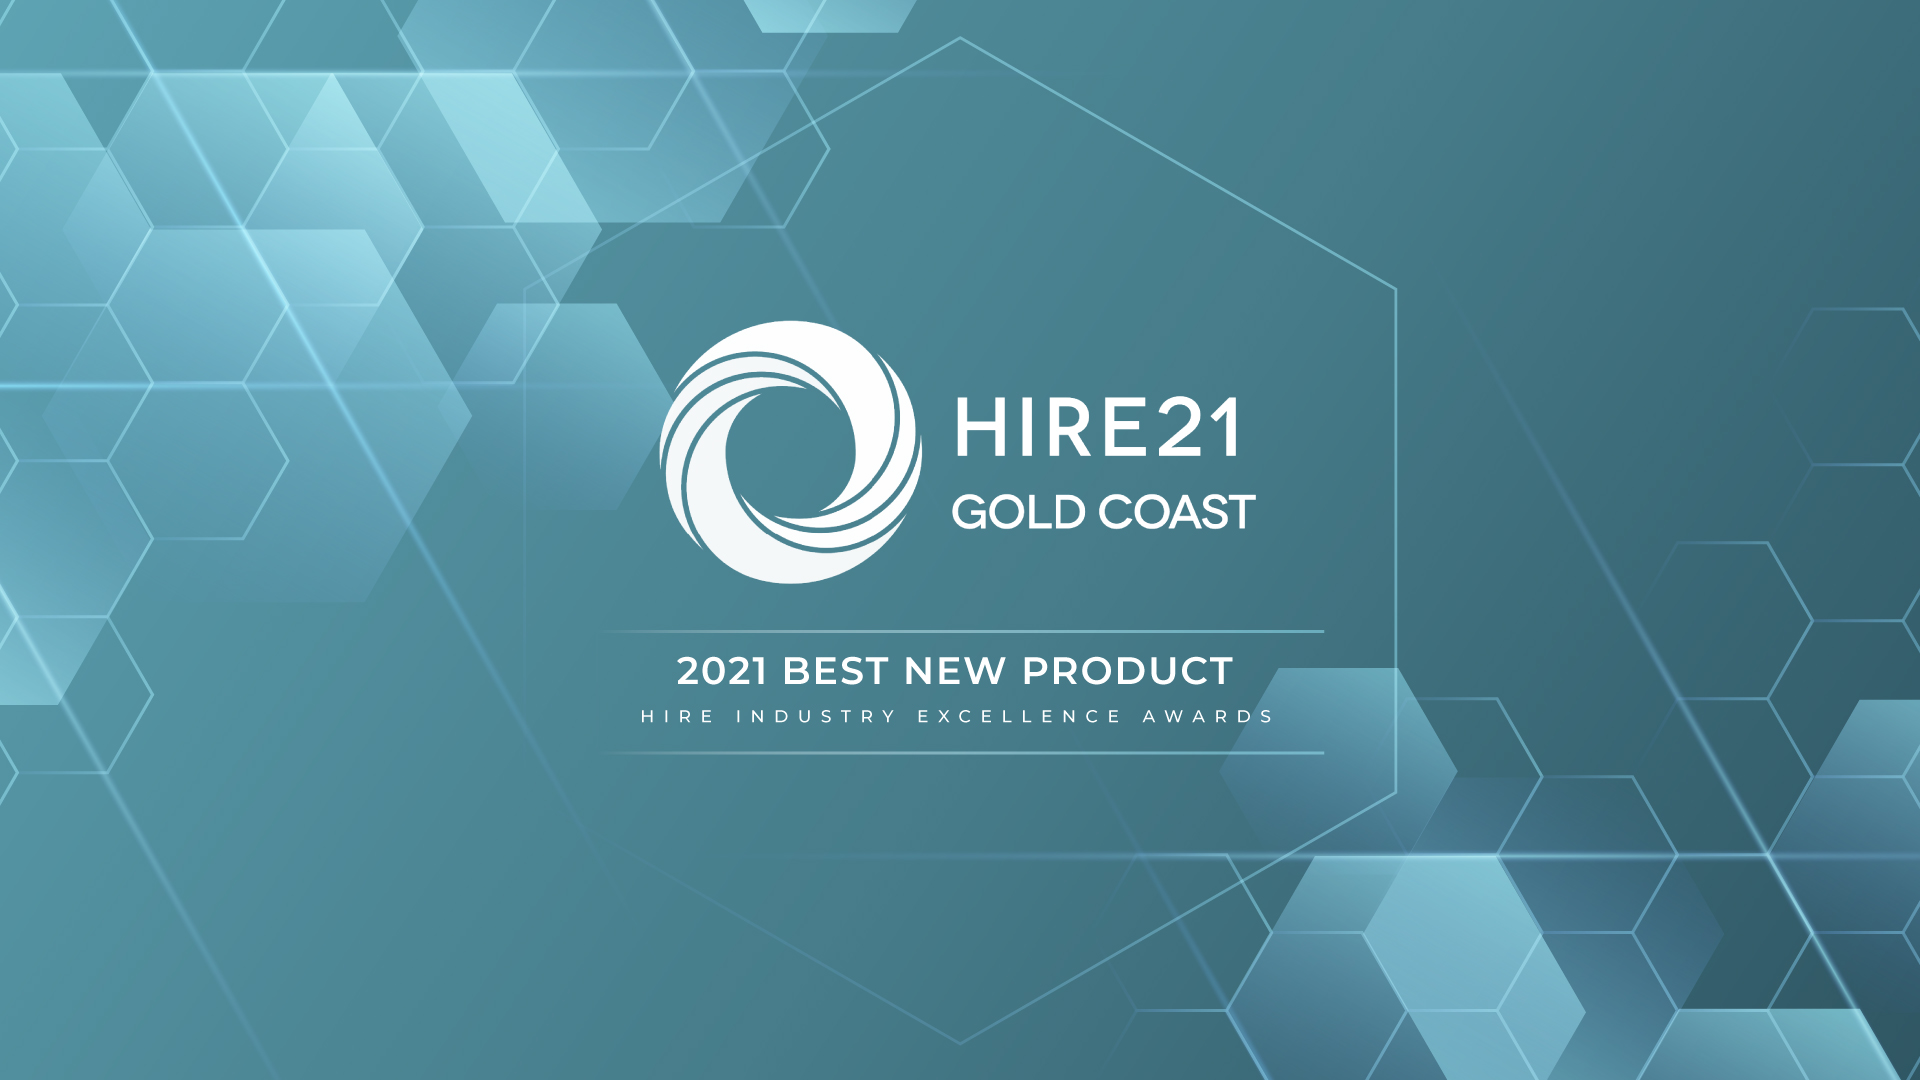 Hire Industry Excellence Award HIRE21 logo, graphic